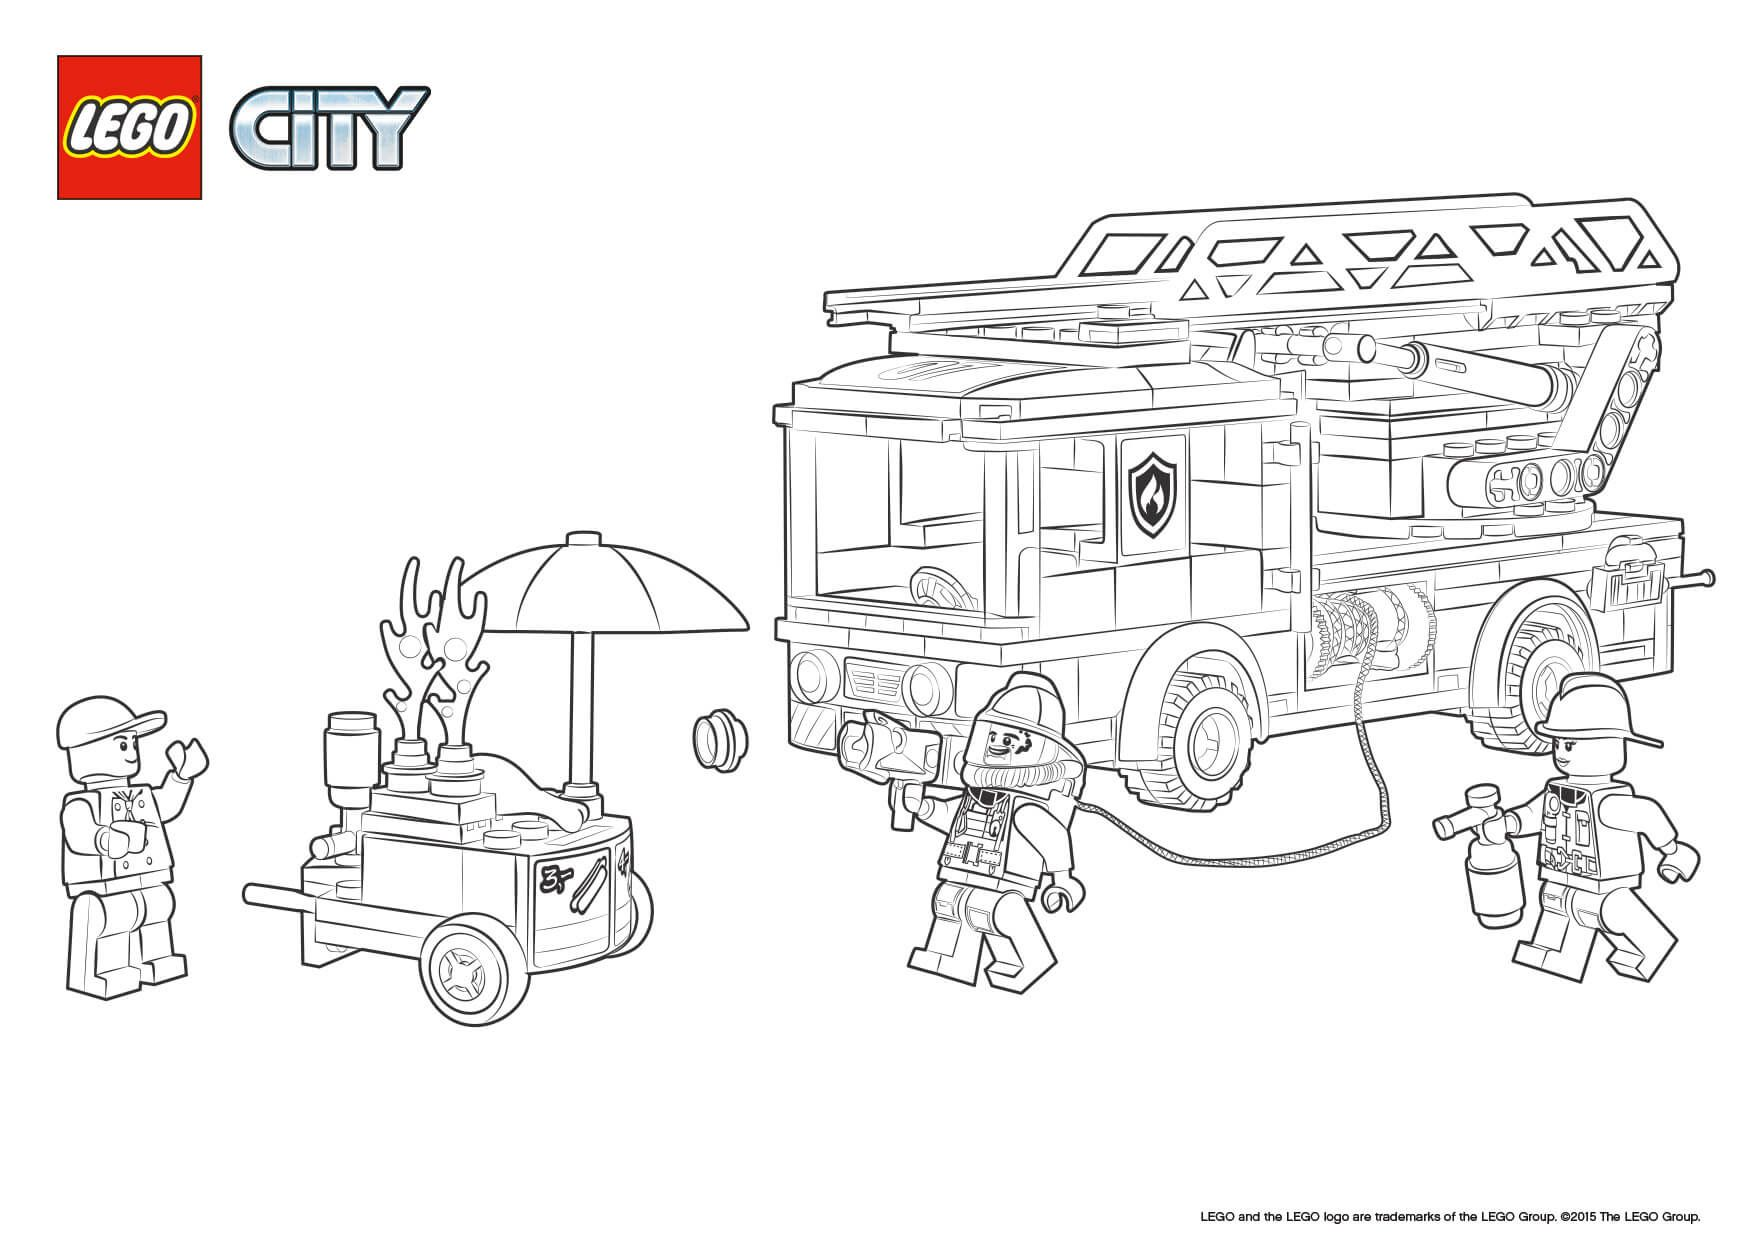 pin by شوشو on تلوين lego coloring pages truck coloring